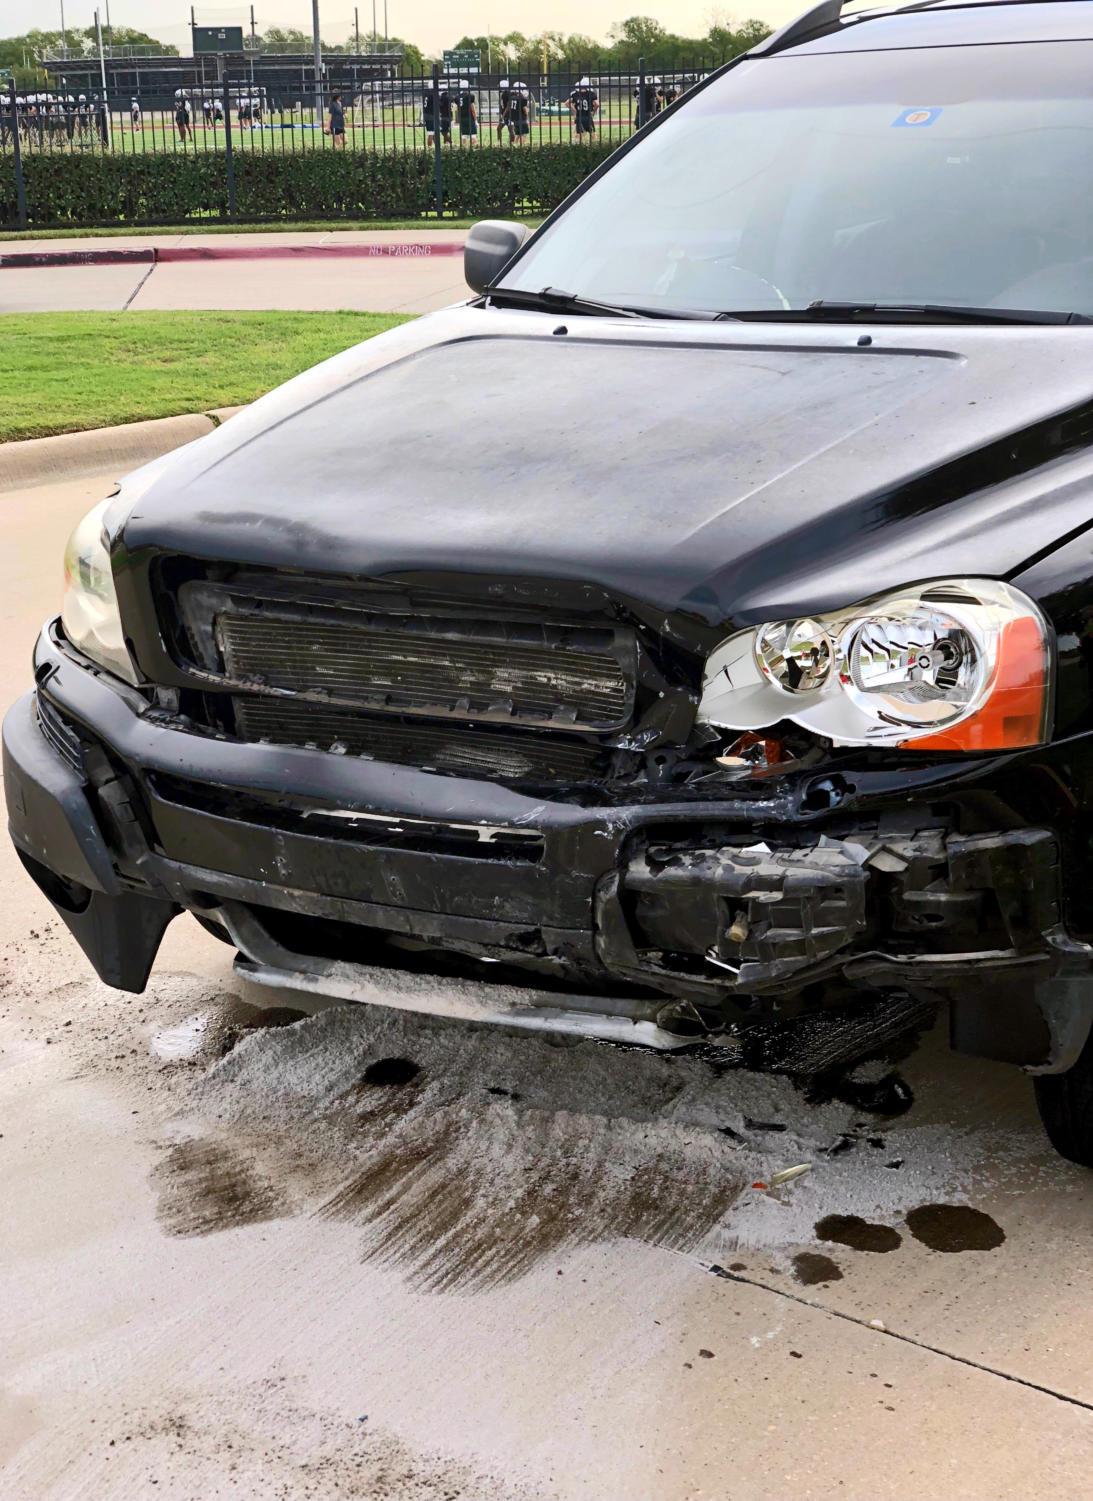 This student vehicle sustained damage during an accident that occurred occurred between Coleman and Parking Lot B on the morning of Aug. 15. Editorial Writer Haley Stack encourages students to take action that could prevent accidents like the one this vehicle suffered.